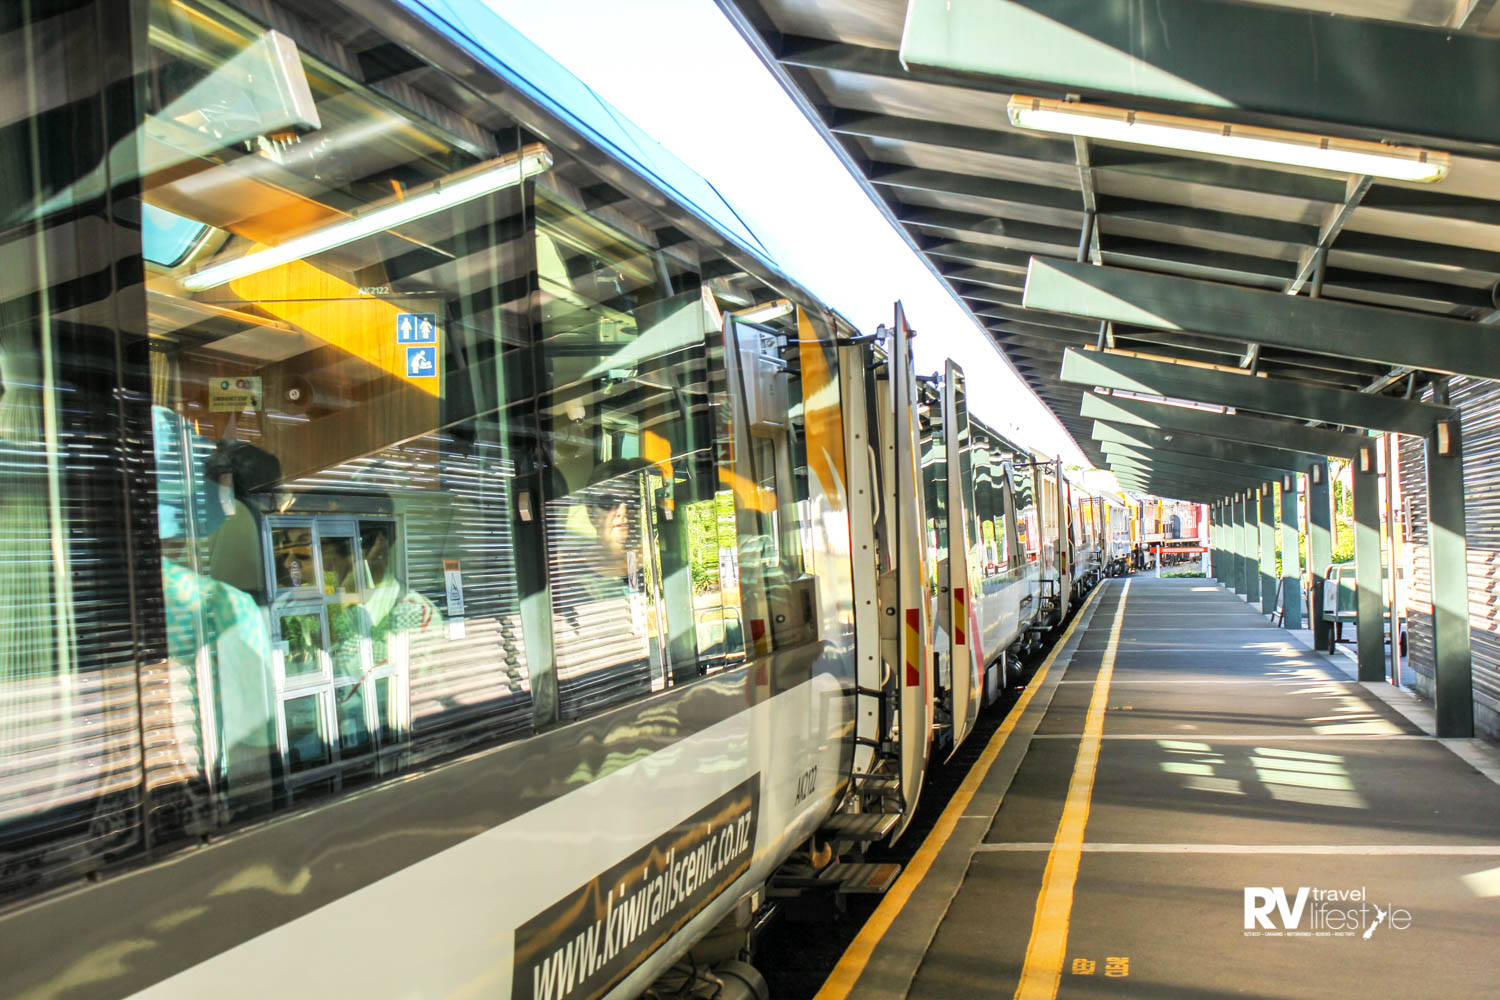 The TranzAlpine at Christchurch Railway Station. Photo supplied